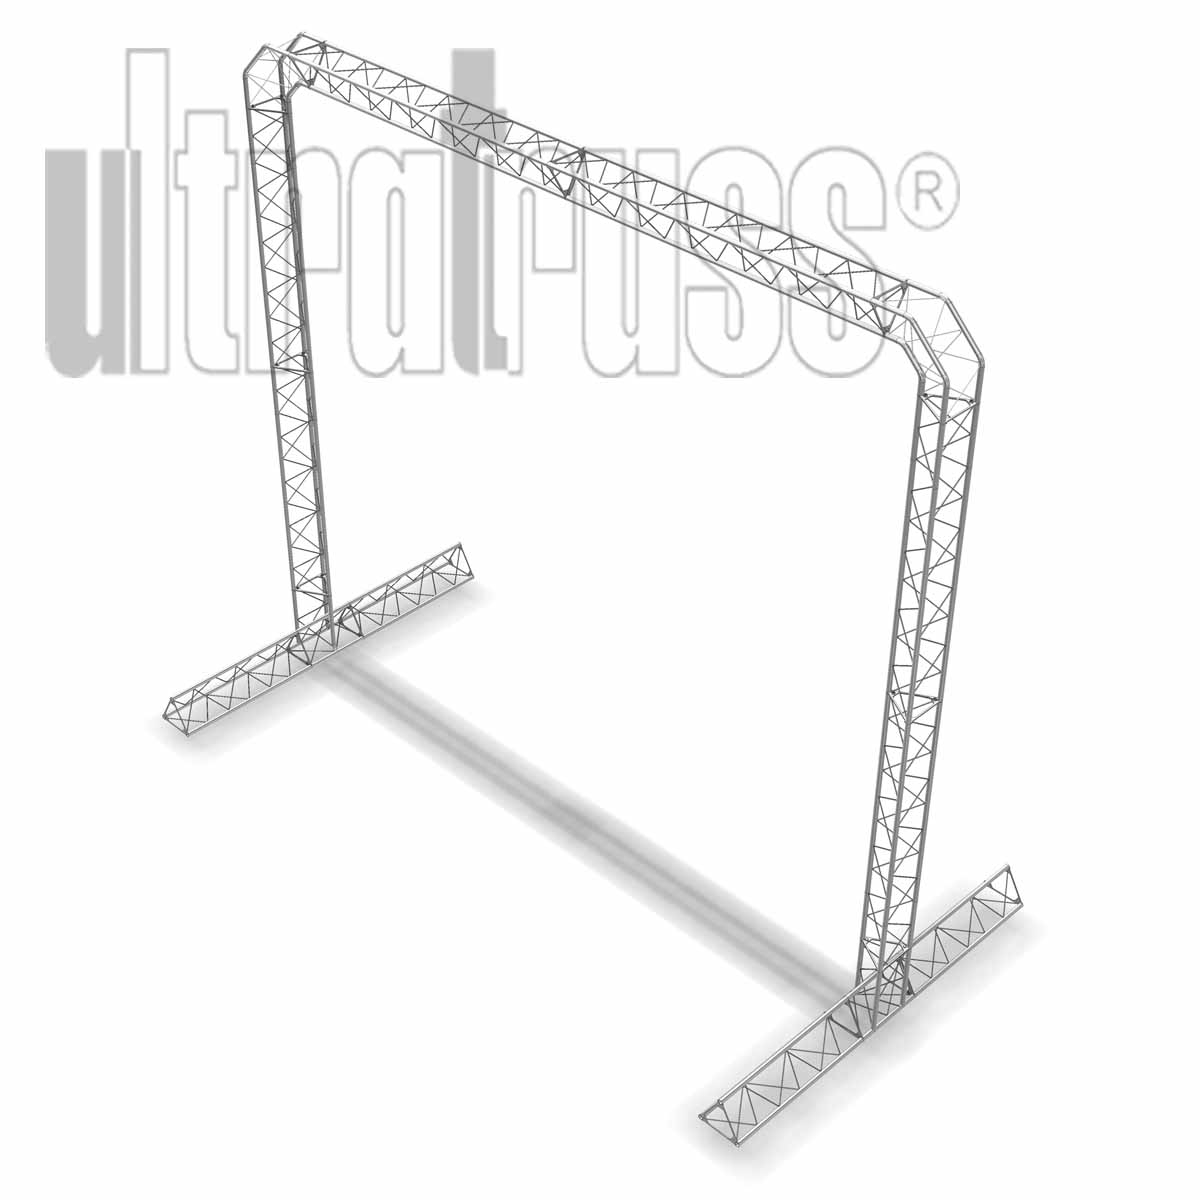 Oaks - 15ft by 13 by 8 ft deep Aluminum Ultratruss Triangle Truss Arch